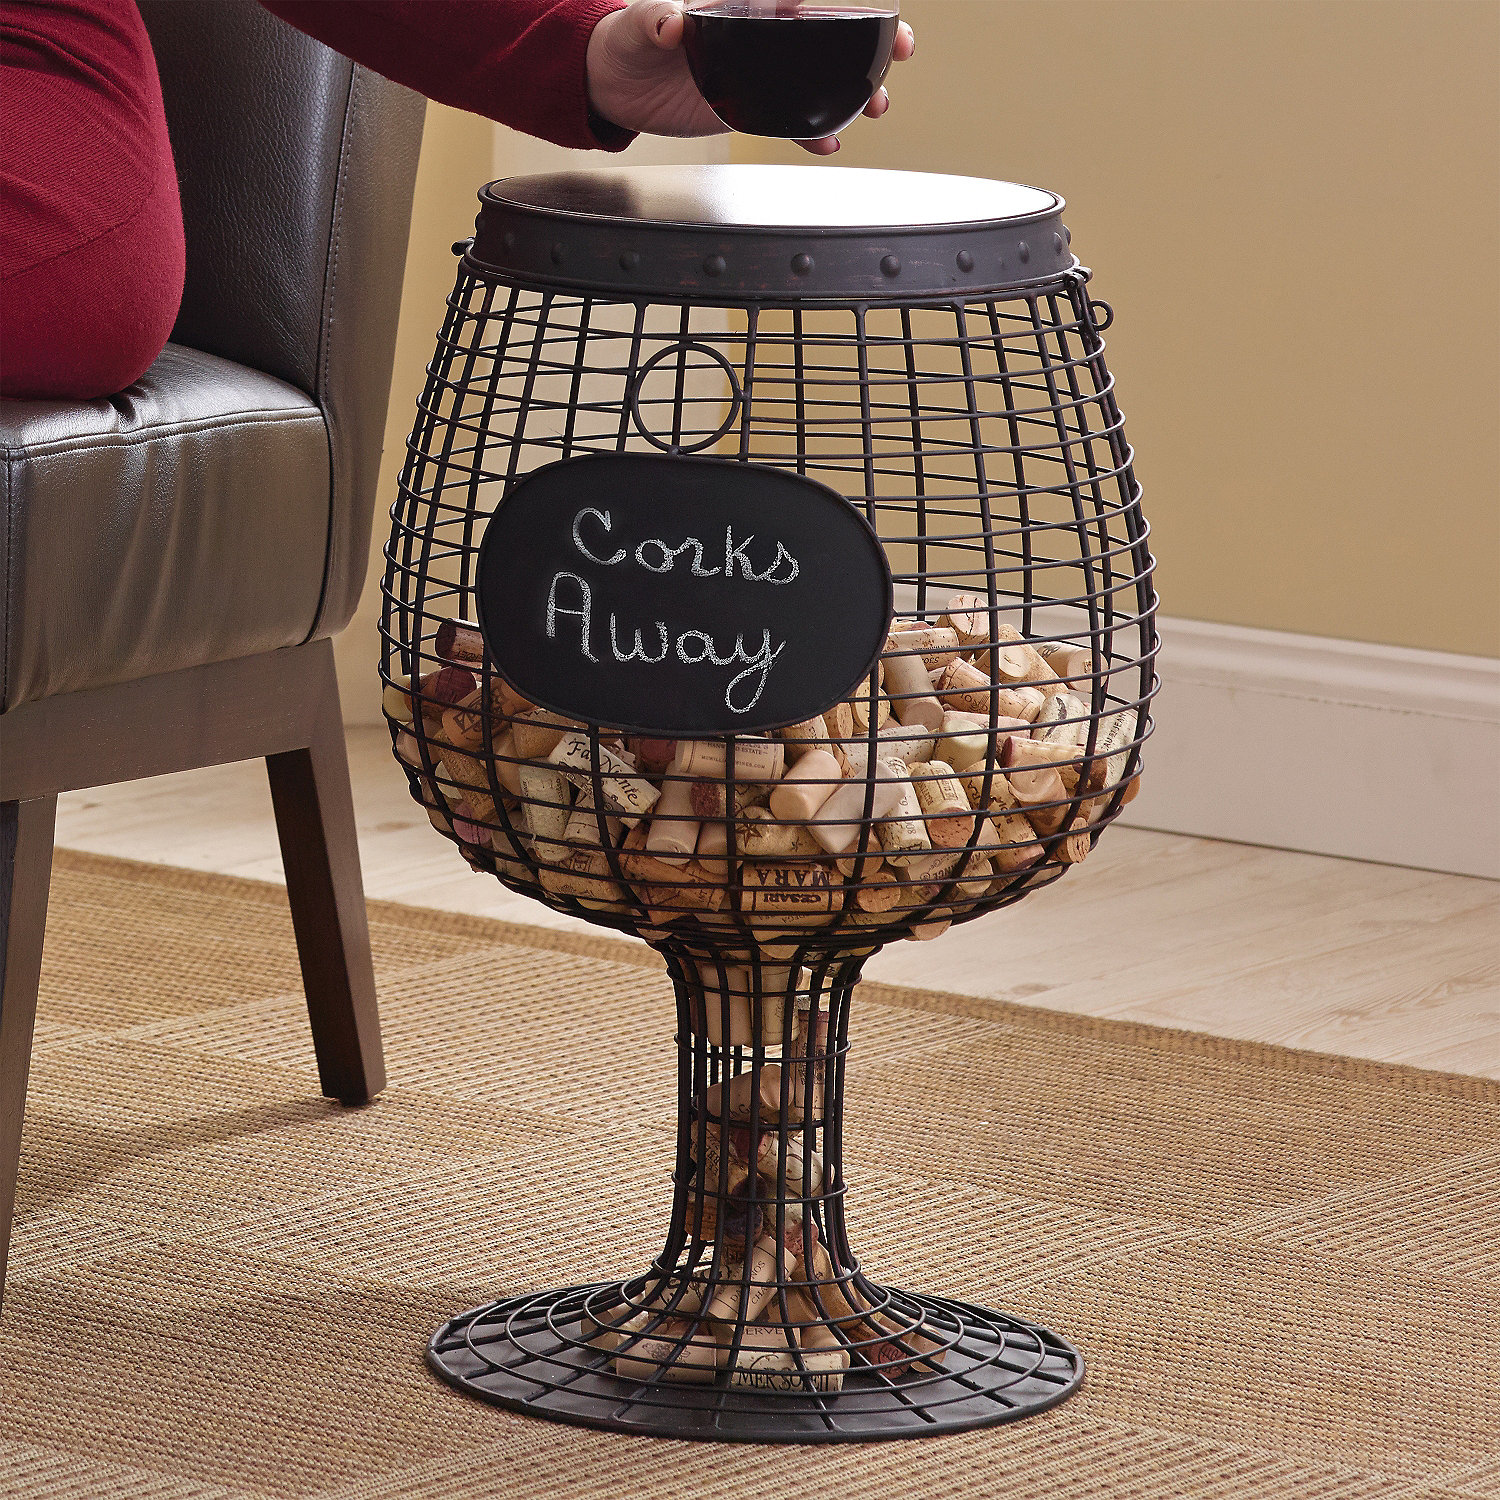 wine glass cork catcher accent table enthusiast with rack small round pedestal side decorative clocks ikea kids storage boxes white xmas runners style chairs large lamp shades